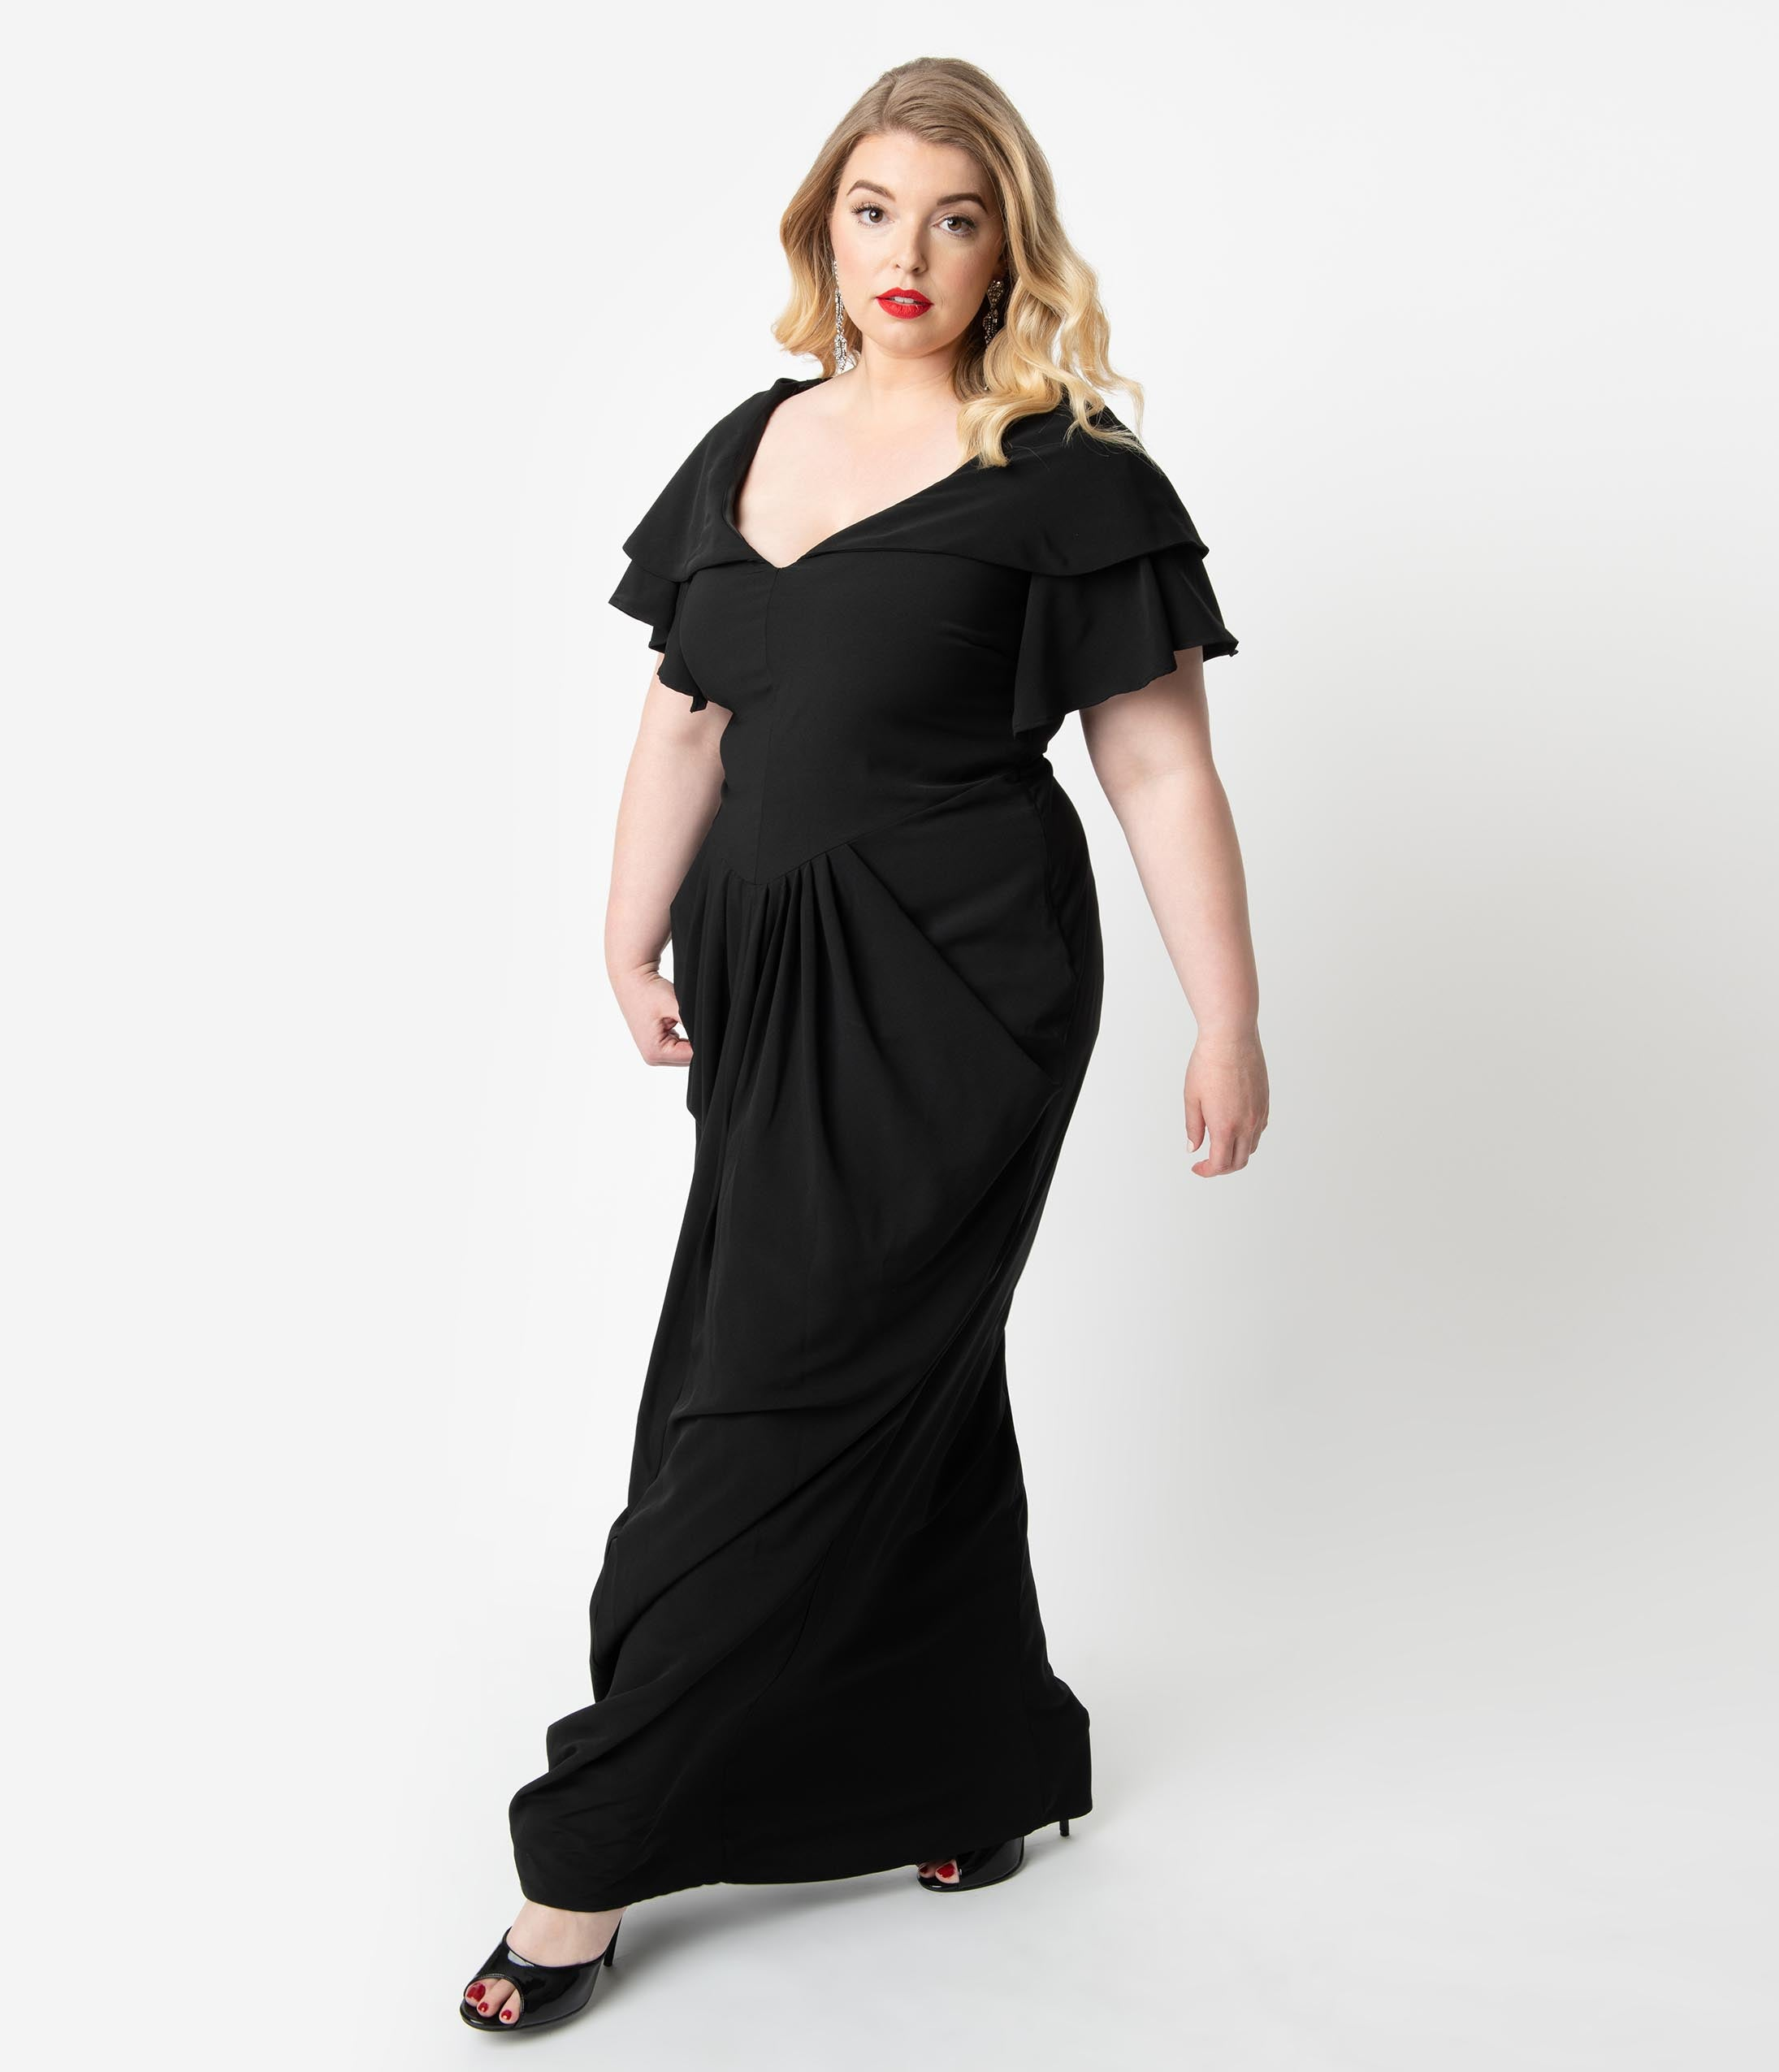 1940s Plus Size Dresses | Swing Dress, Tea Dress Micheline Pitt For Unique Vintage Plus Size 1940S Style Black Zhora Hooded Gown $148.00 AT vintagedancer.com